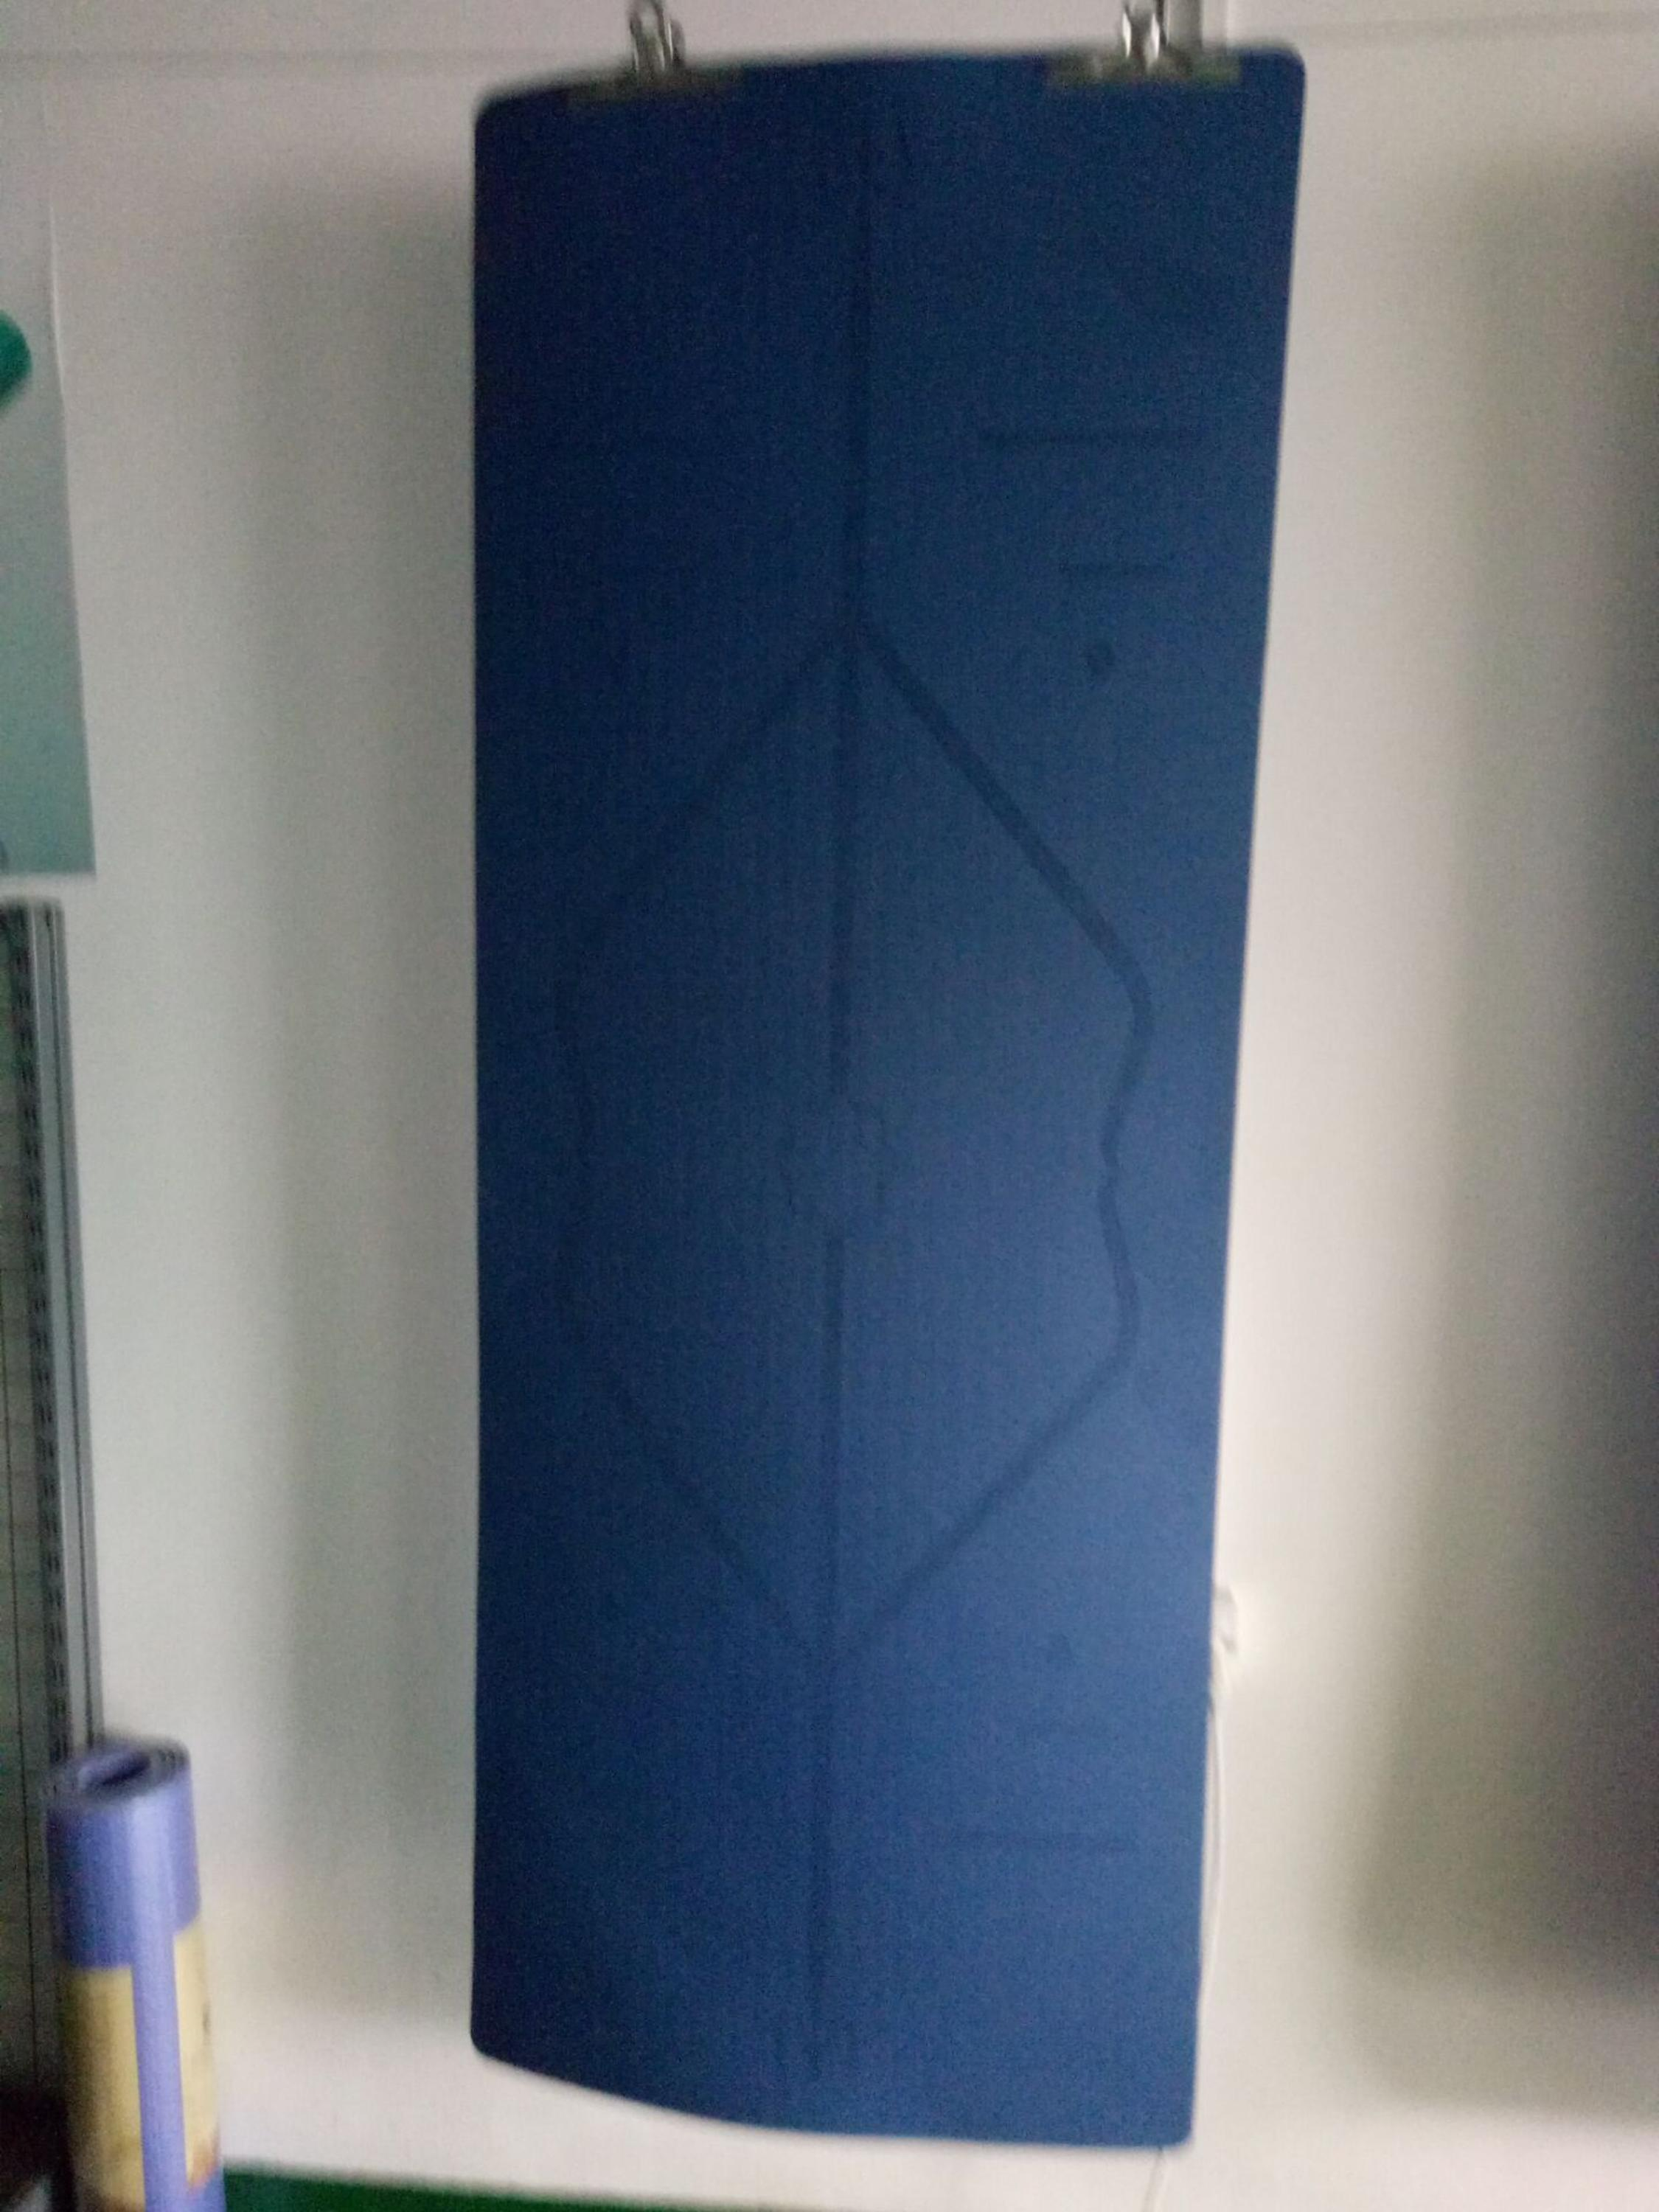 Laser engraving line position TPE yoga mat for new learner